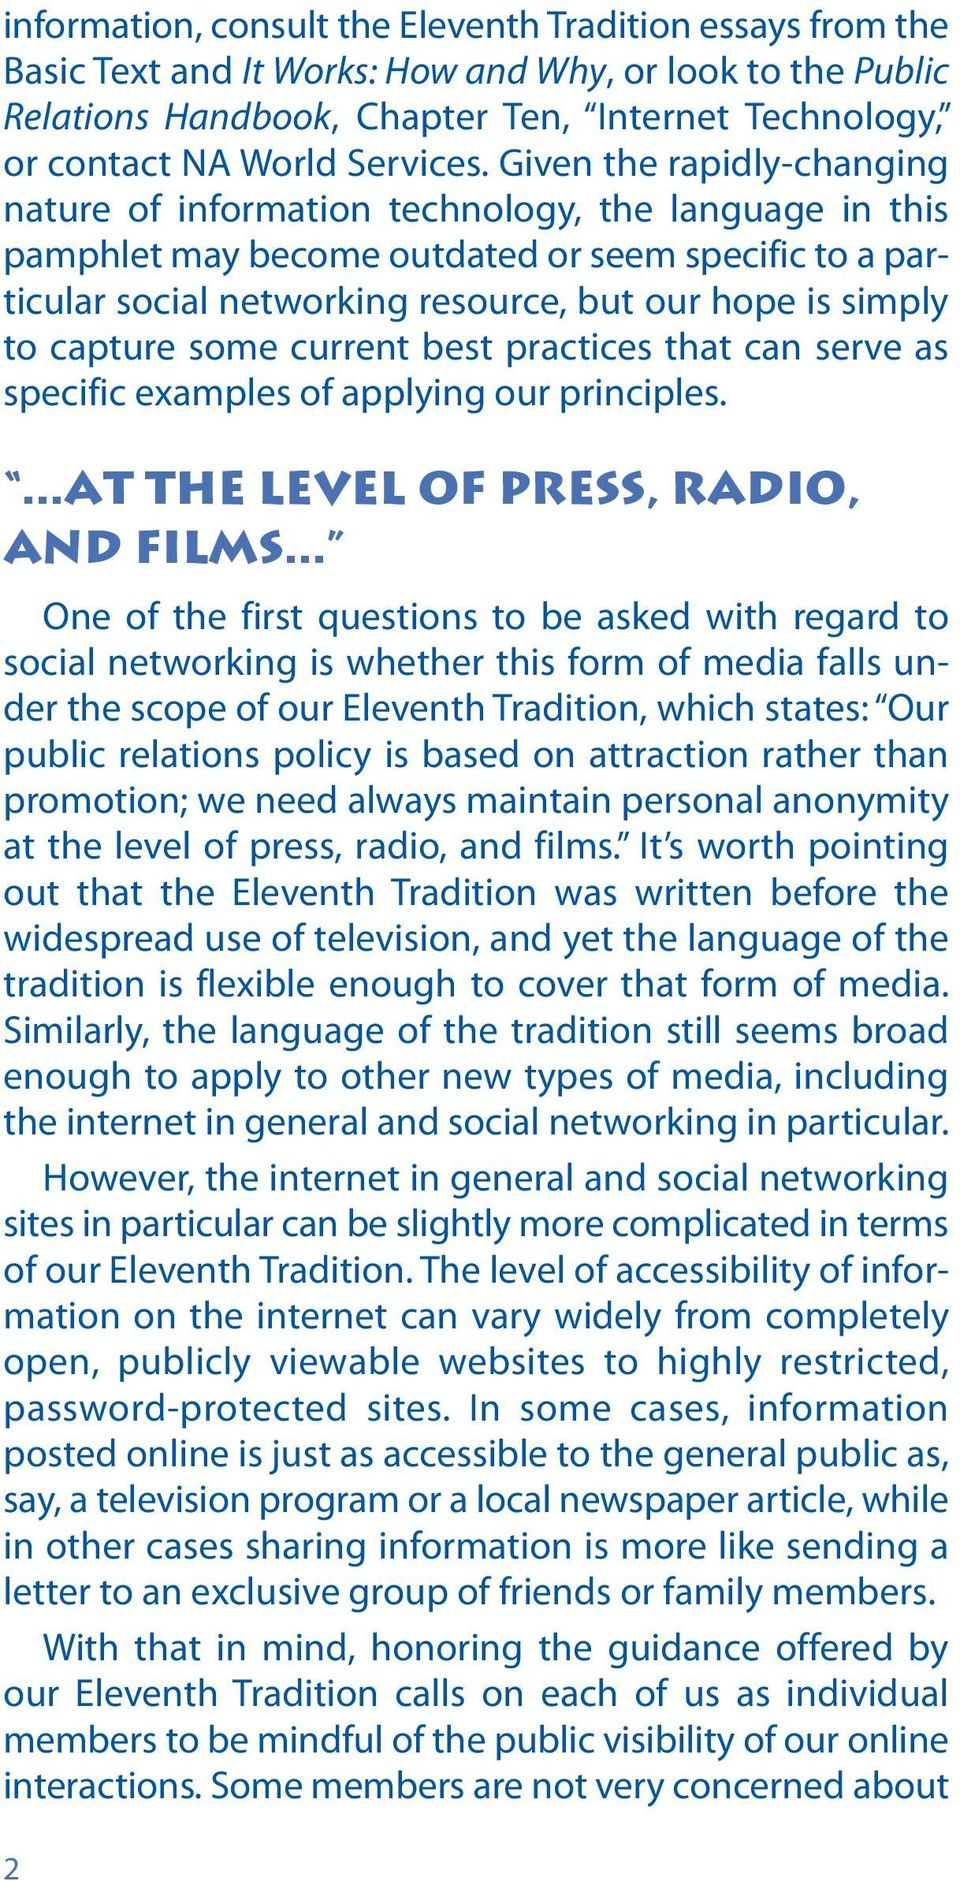 Given the rapidly-changing nature of information technology, the language in this pamphlet may become outdated or seem specific to a particular social networking resource, but our hope is simply to